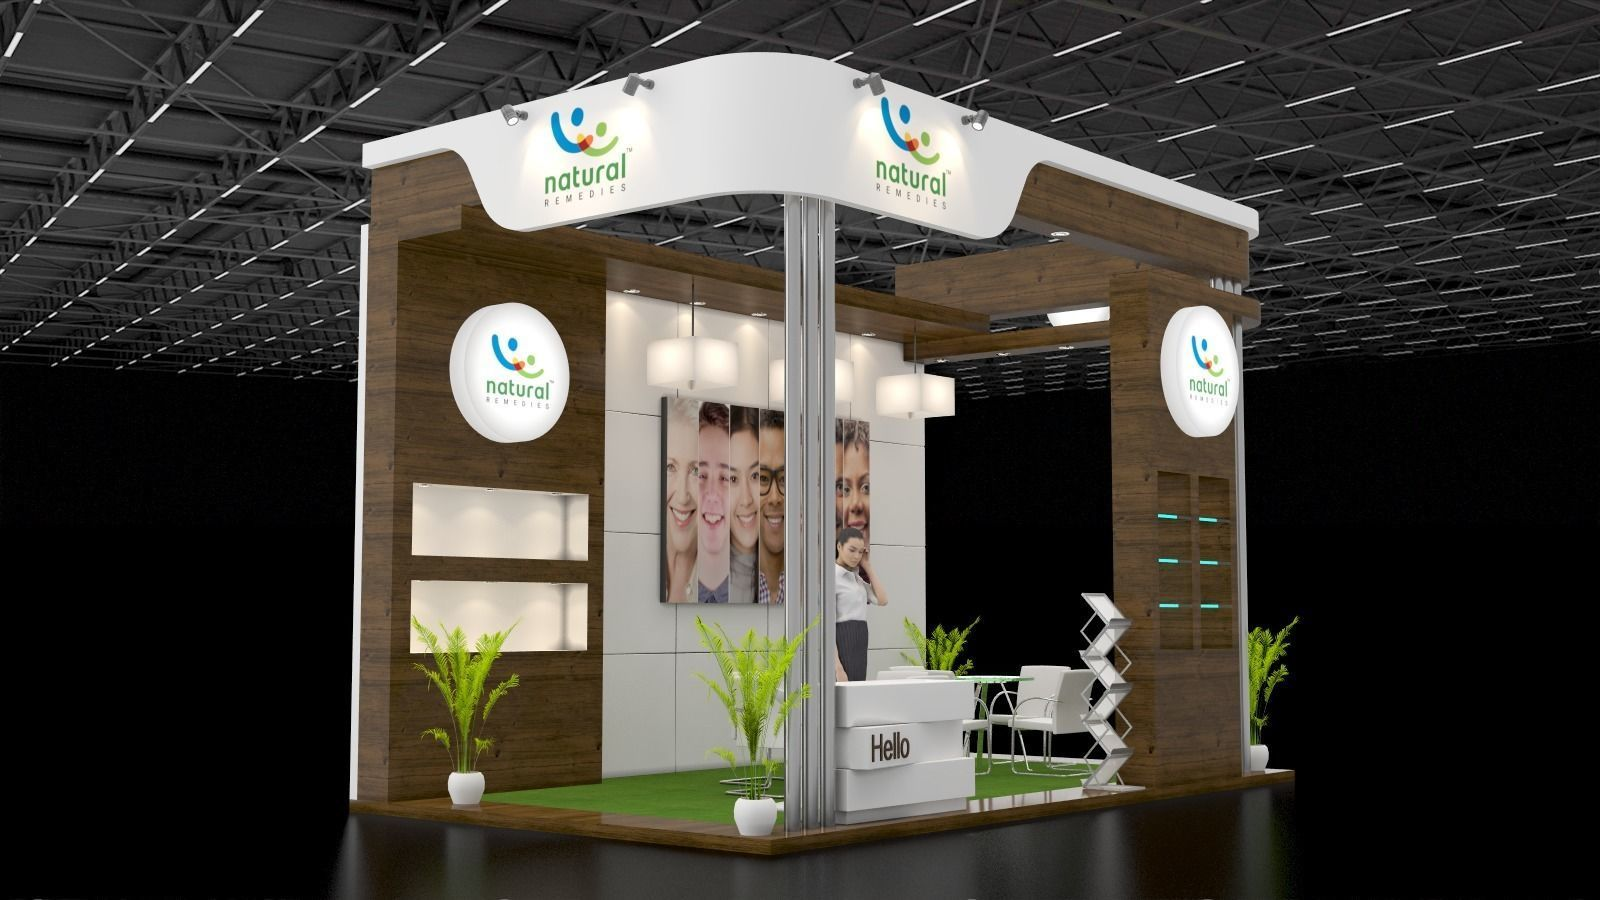 Exhibition Stand Design 3d Max : D model display exhibition stand design cgtrader